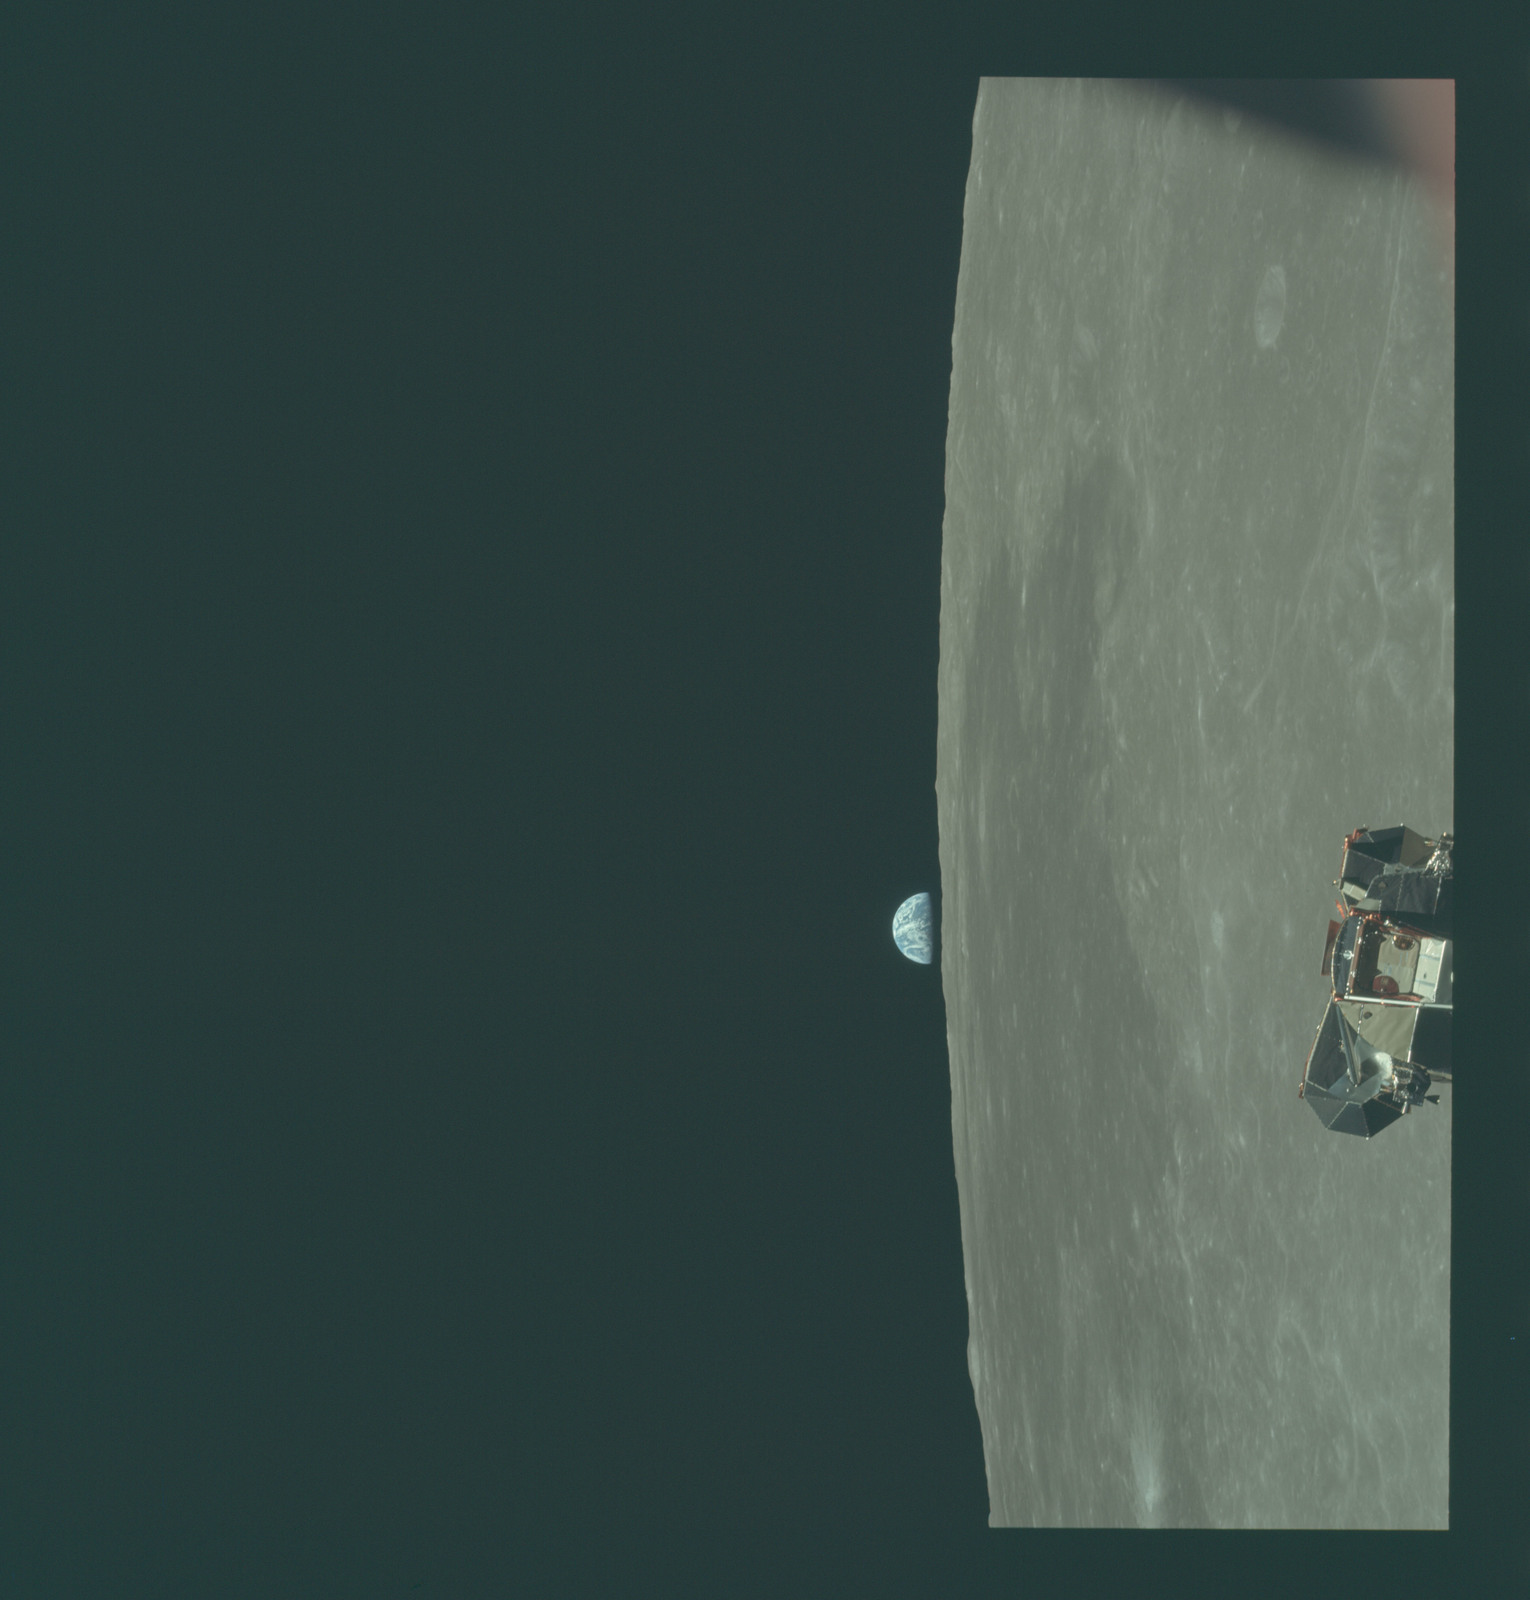 AS11-44-6635 - Apollo 11 - Apollo 11 Mission image - View of Moon limb and Lunar Module during ascent, Mare Smythii, Earth on horizon